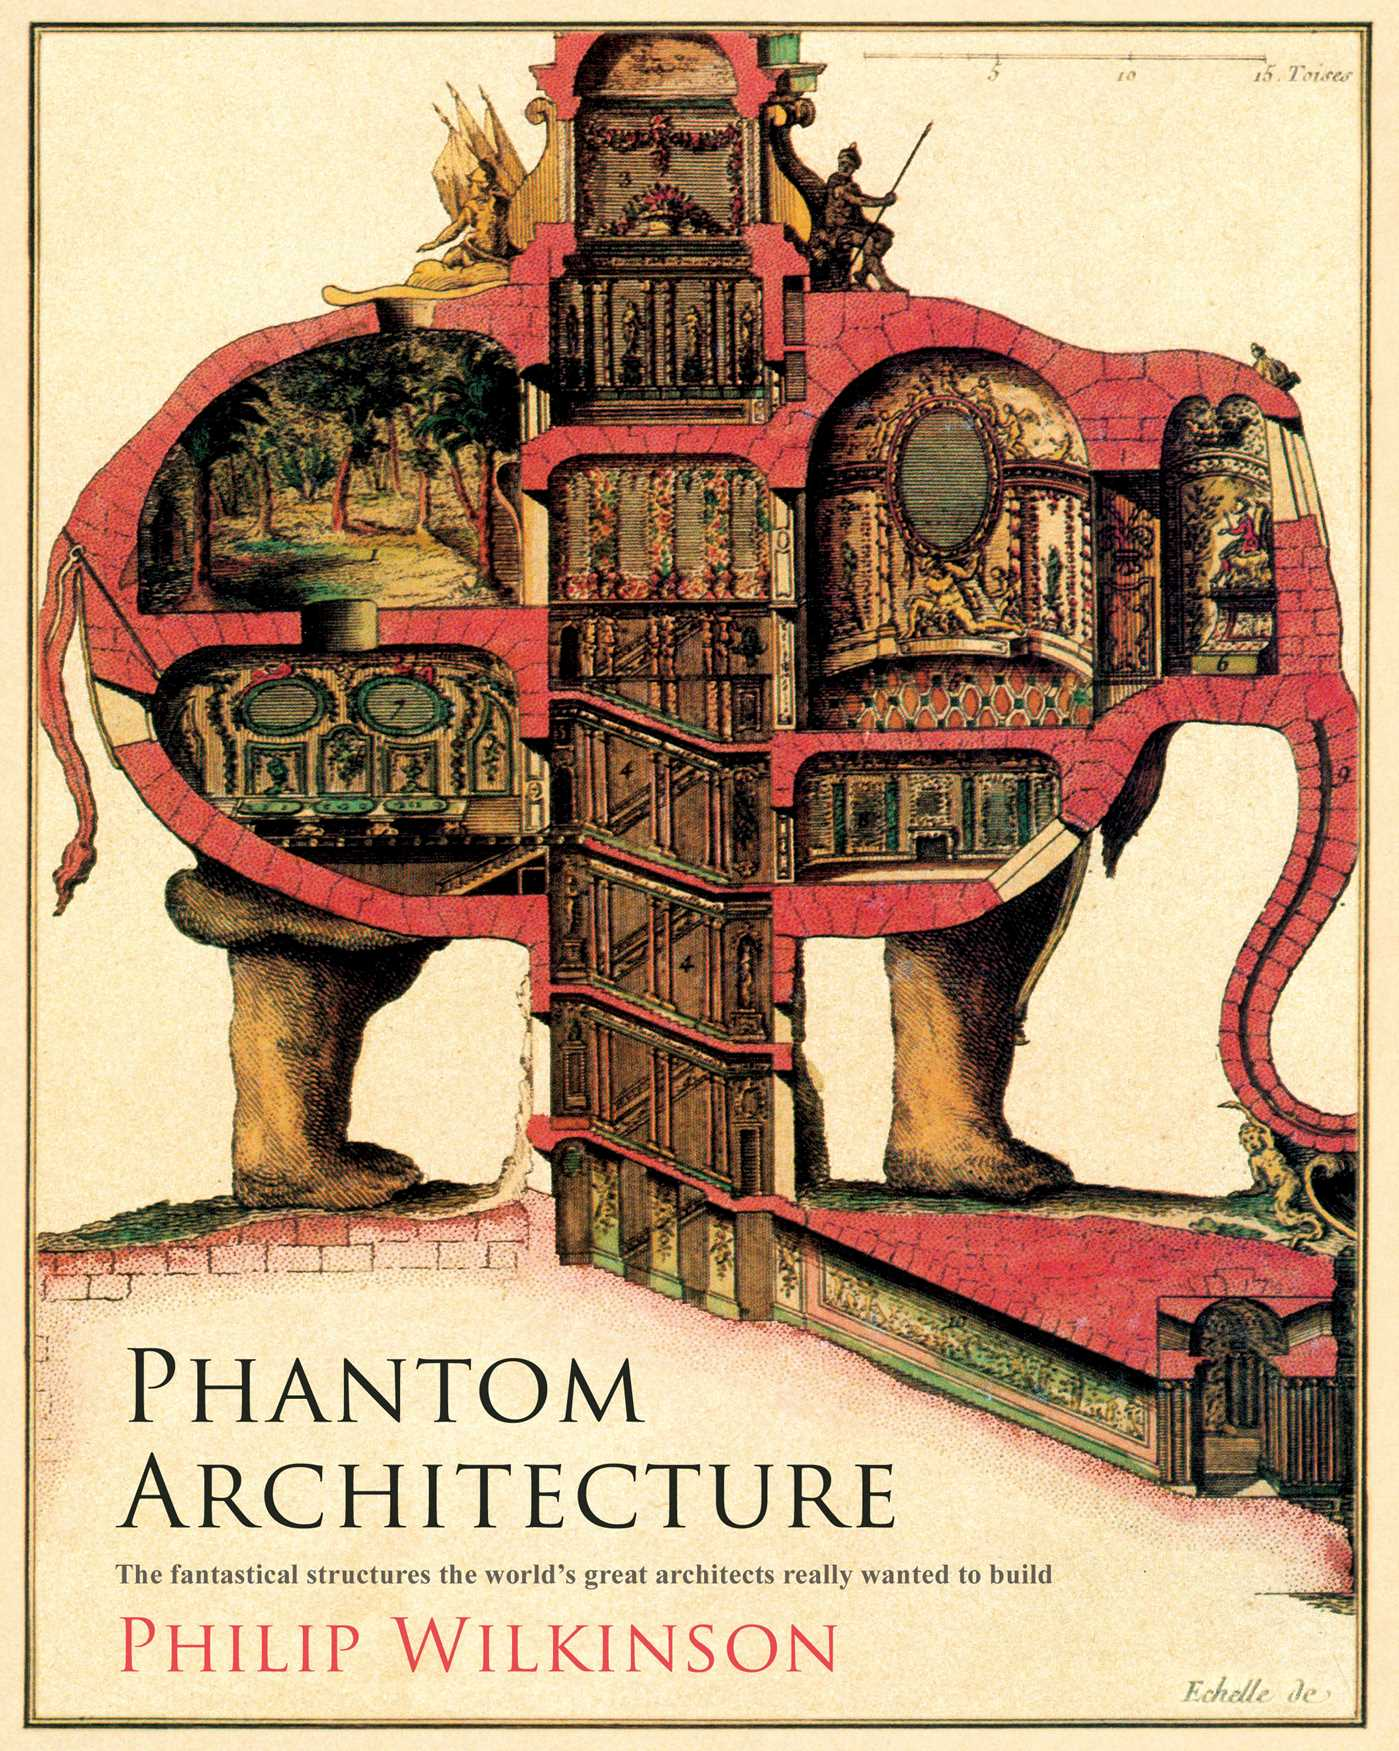 Phantom architecture ebook by philip wilkinson official publisher book cover image jpg phantom architecture ebook 9781471166426 fandeluxe Image collections